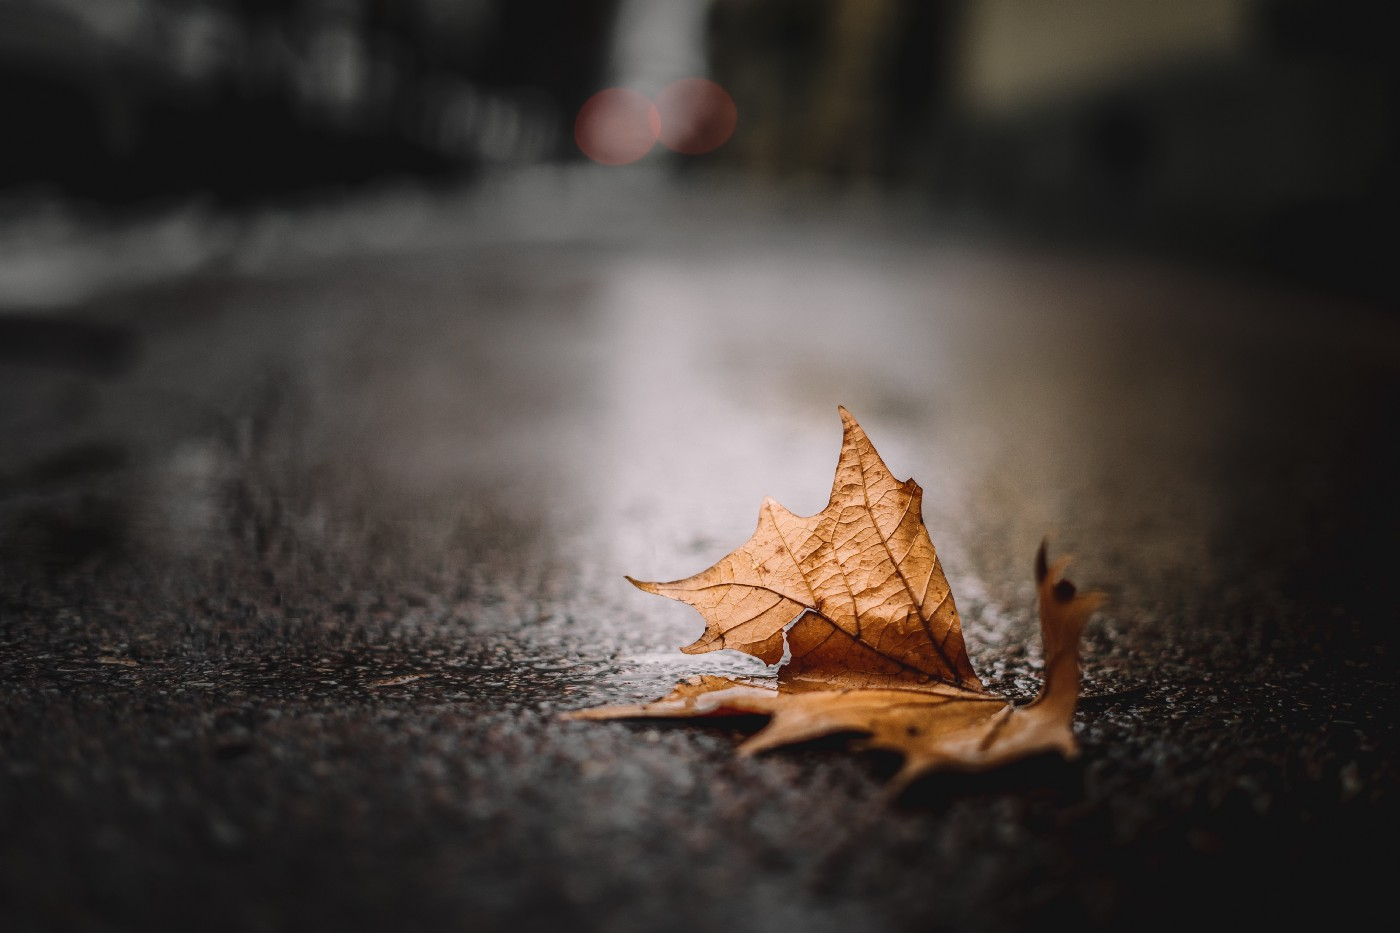 Autumn fallen leaf on a wet ground, symbolizing the onset of the cooler season